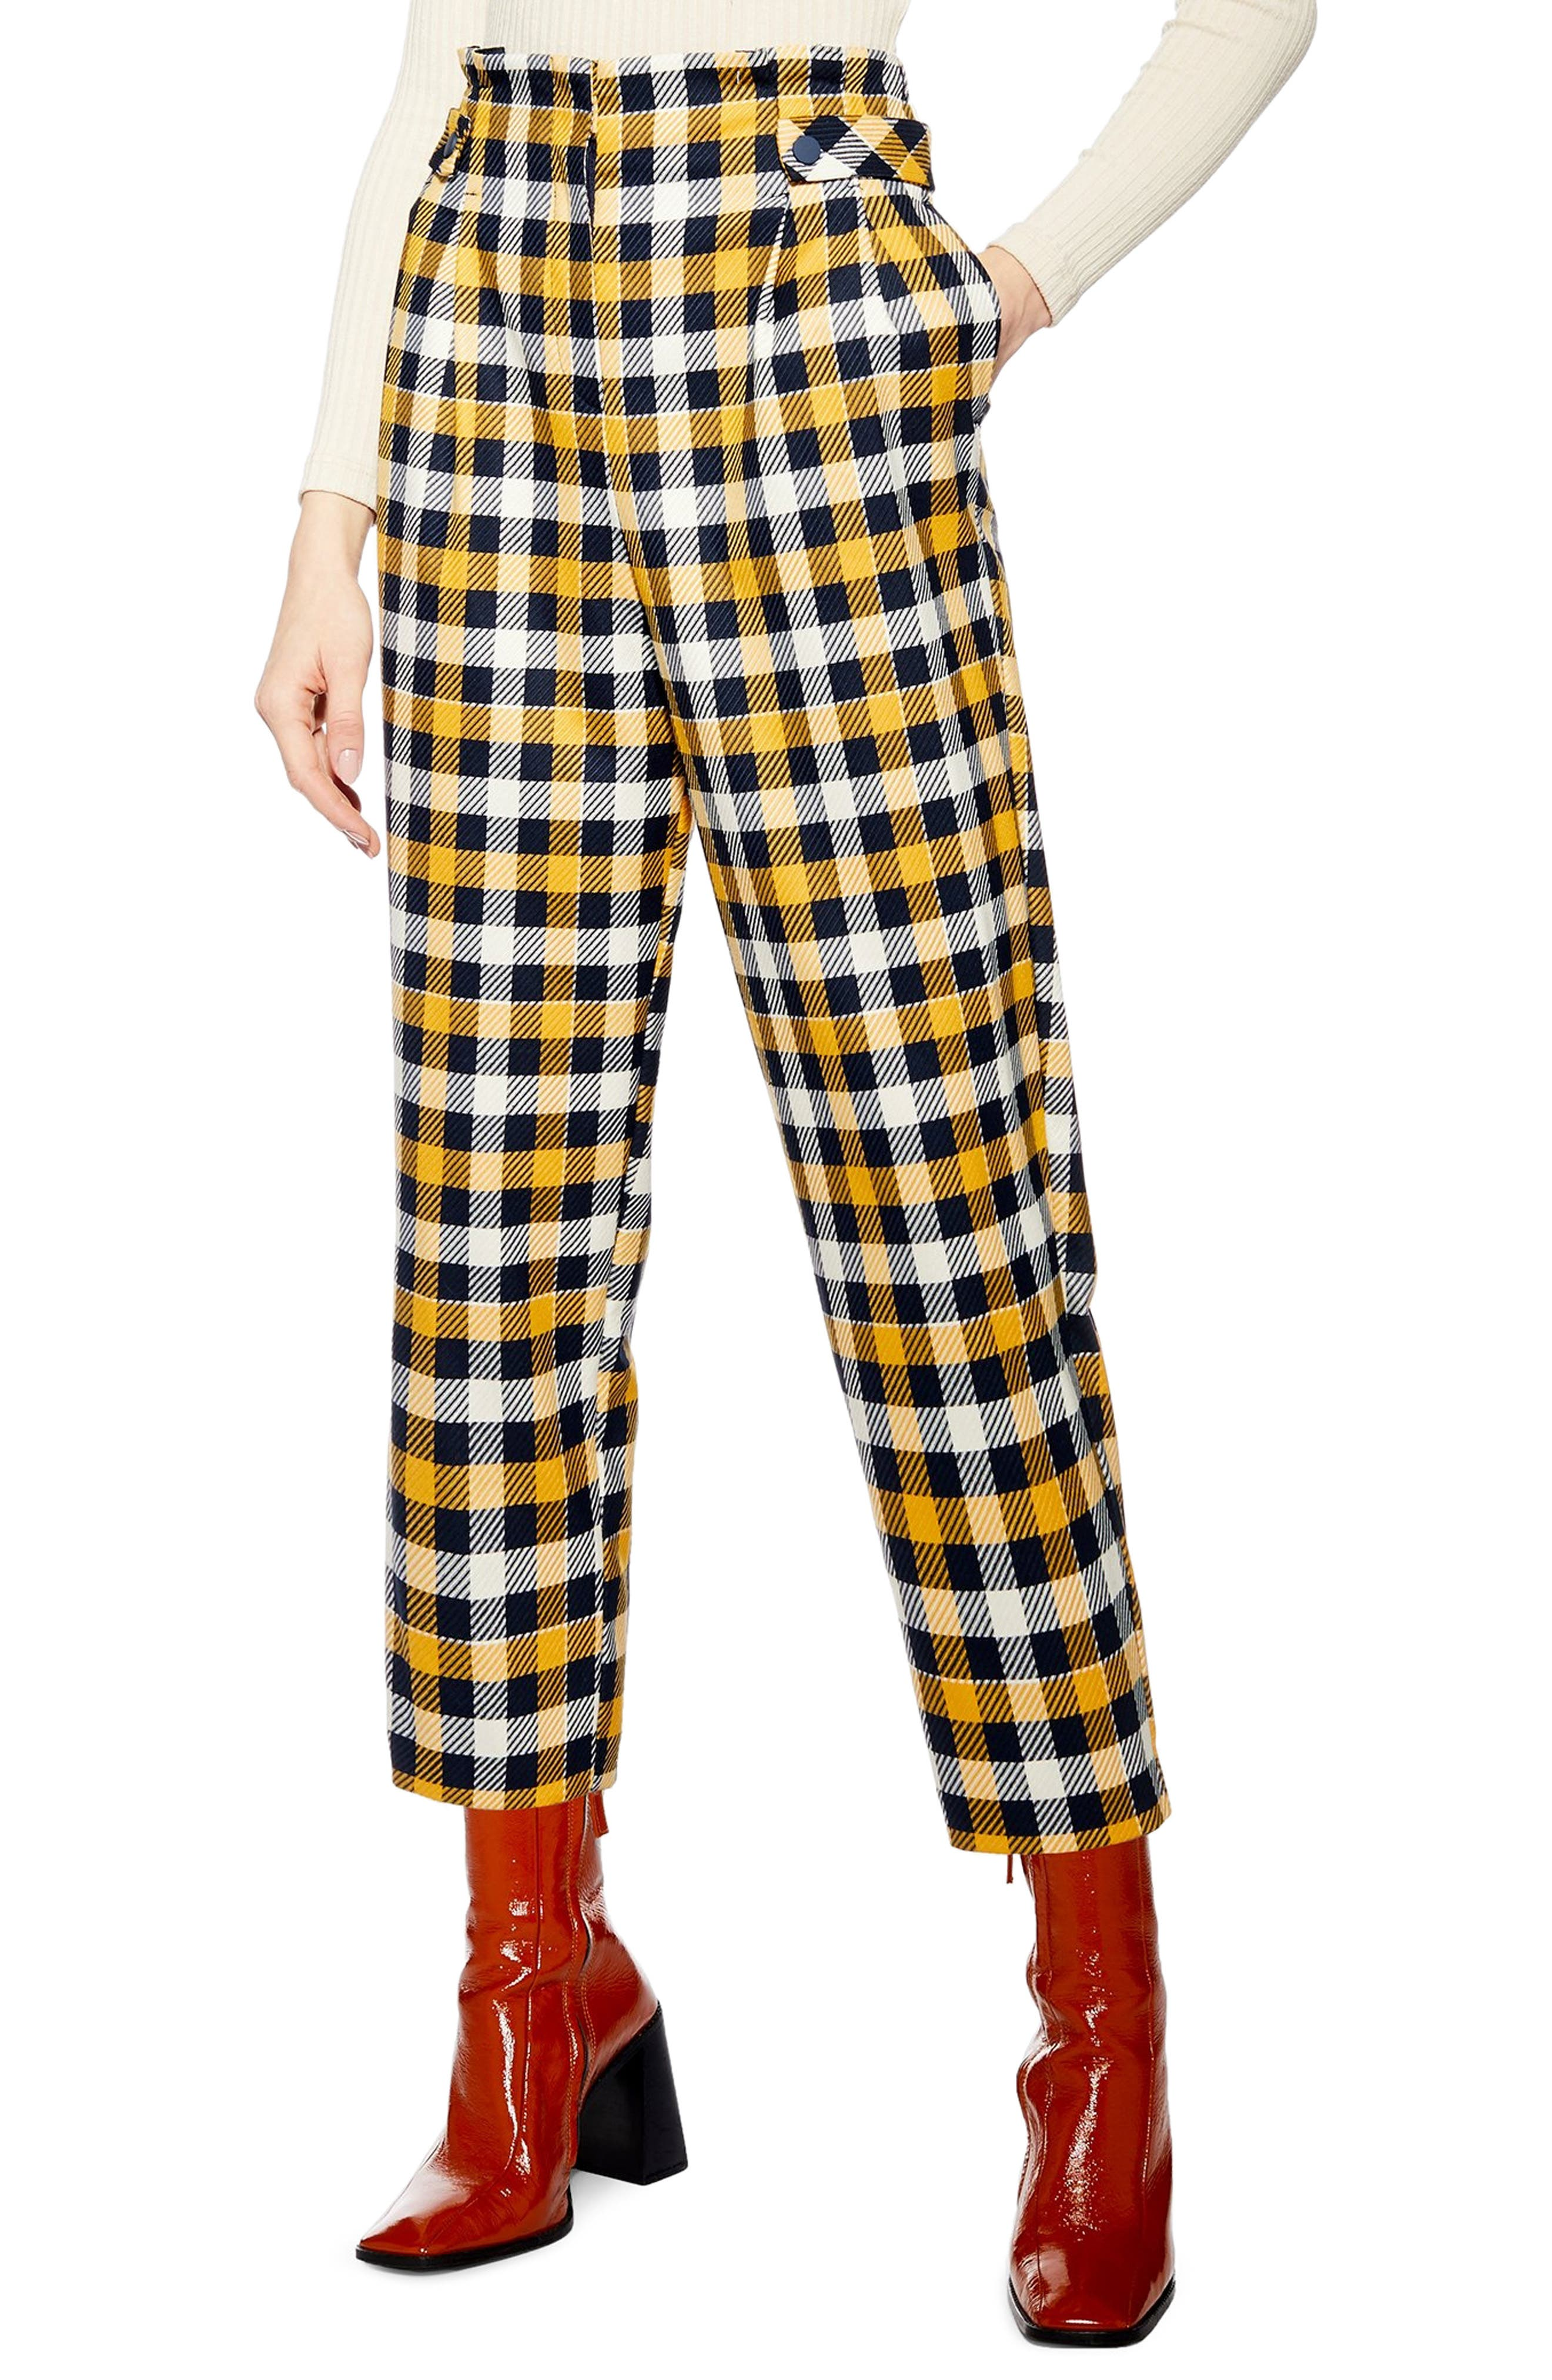 TOPSHOP, Tara Check Twill Crop Trousers, Main thumbnail 1, color, YELLOW MULTI